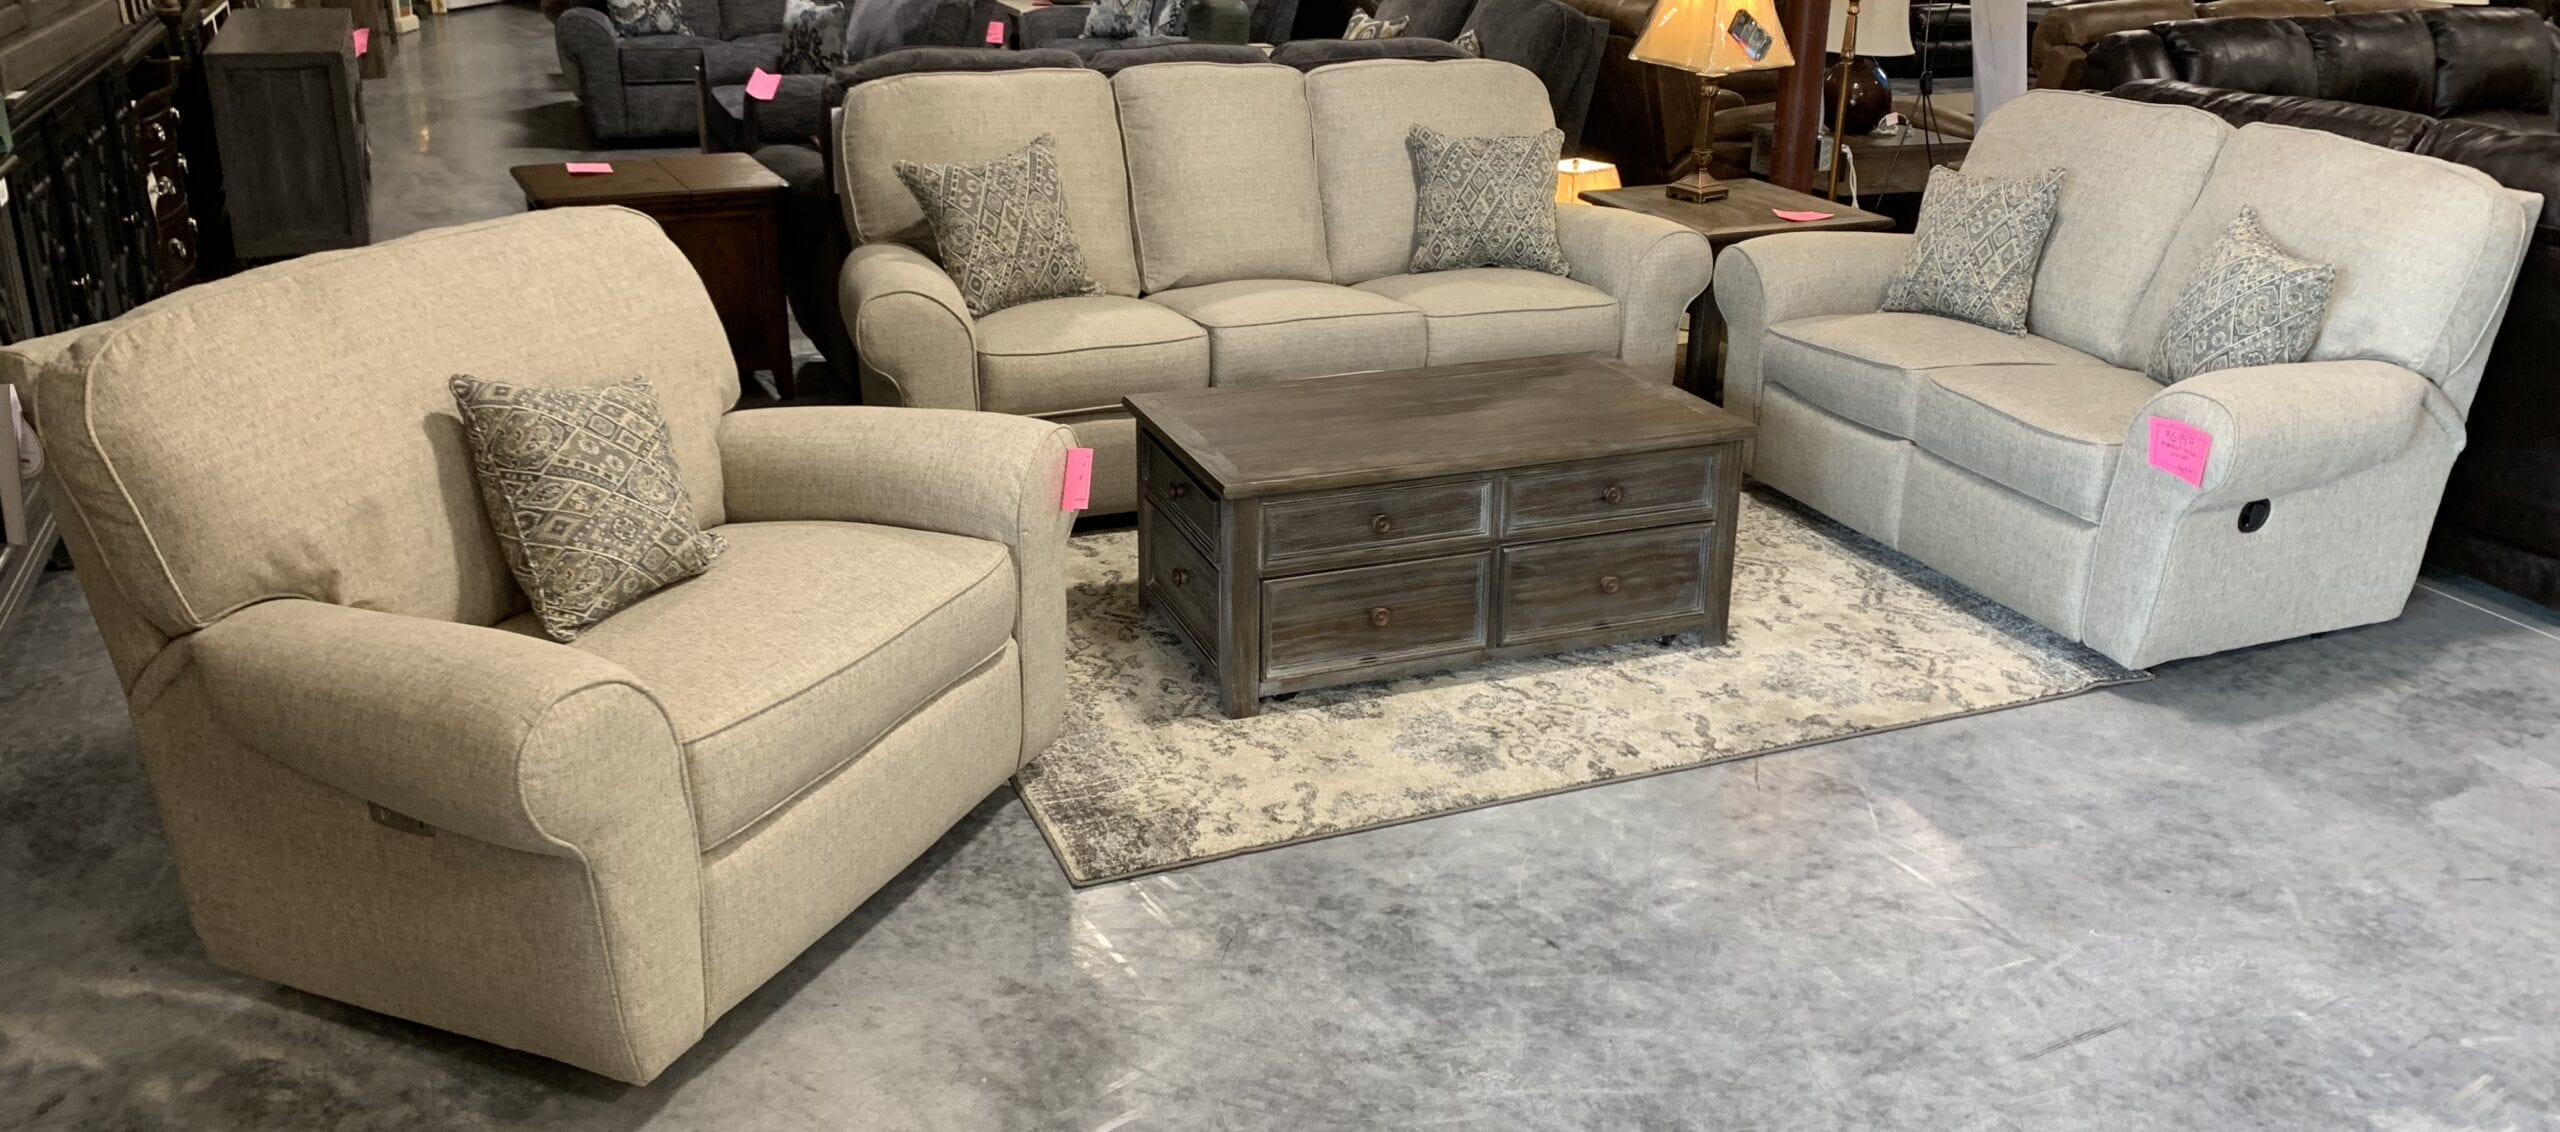 A Lane power reclining sofa, loveseat, and chair set.